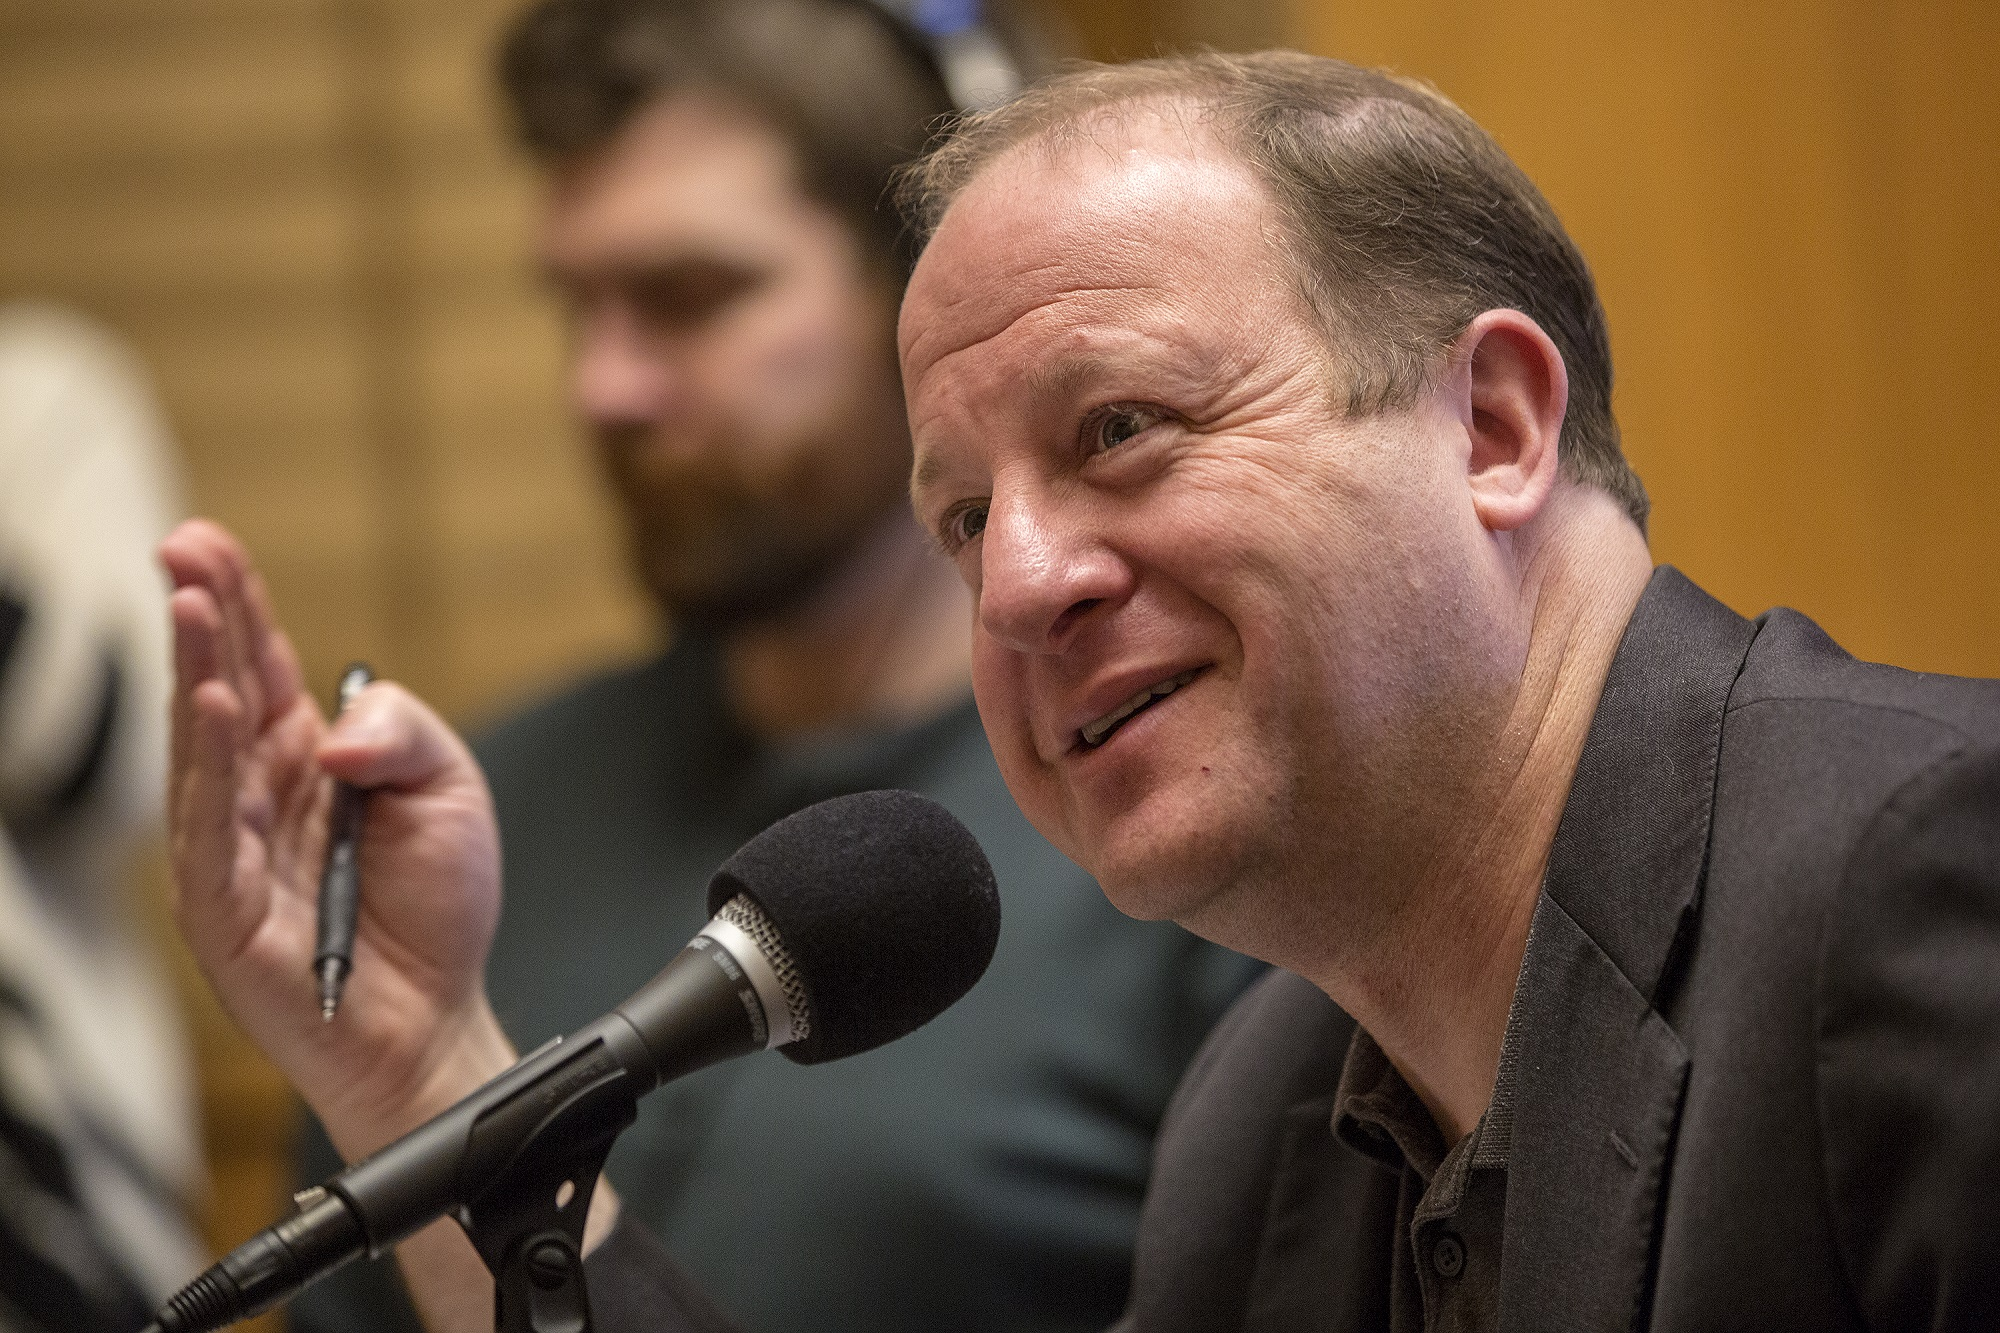 Photo: Jared Polis 1 HV 20190206